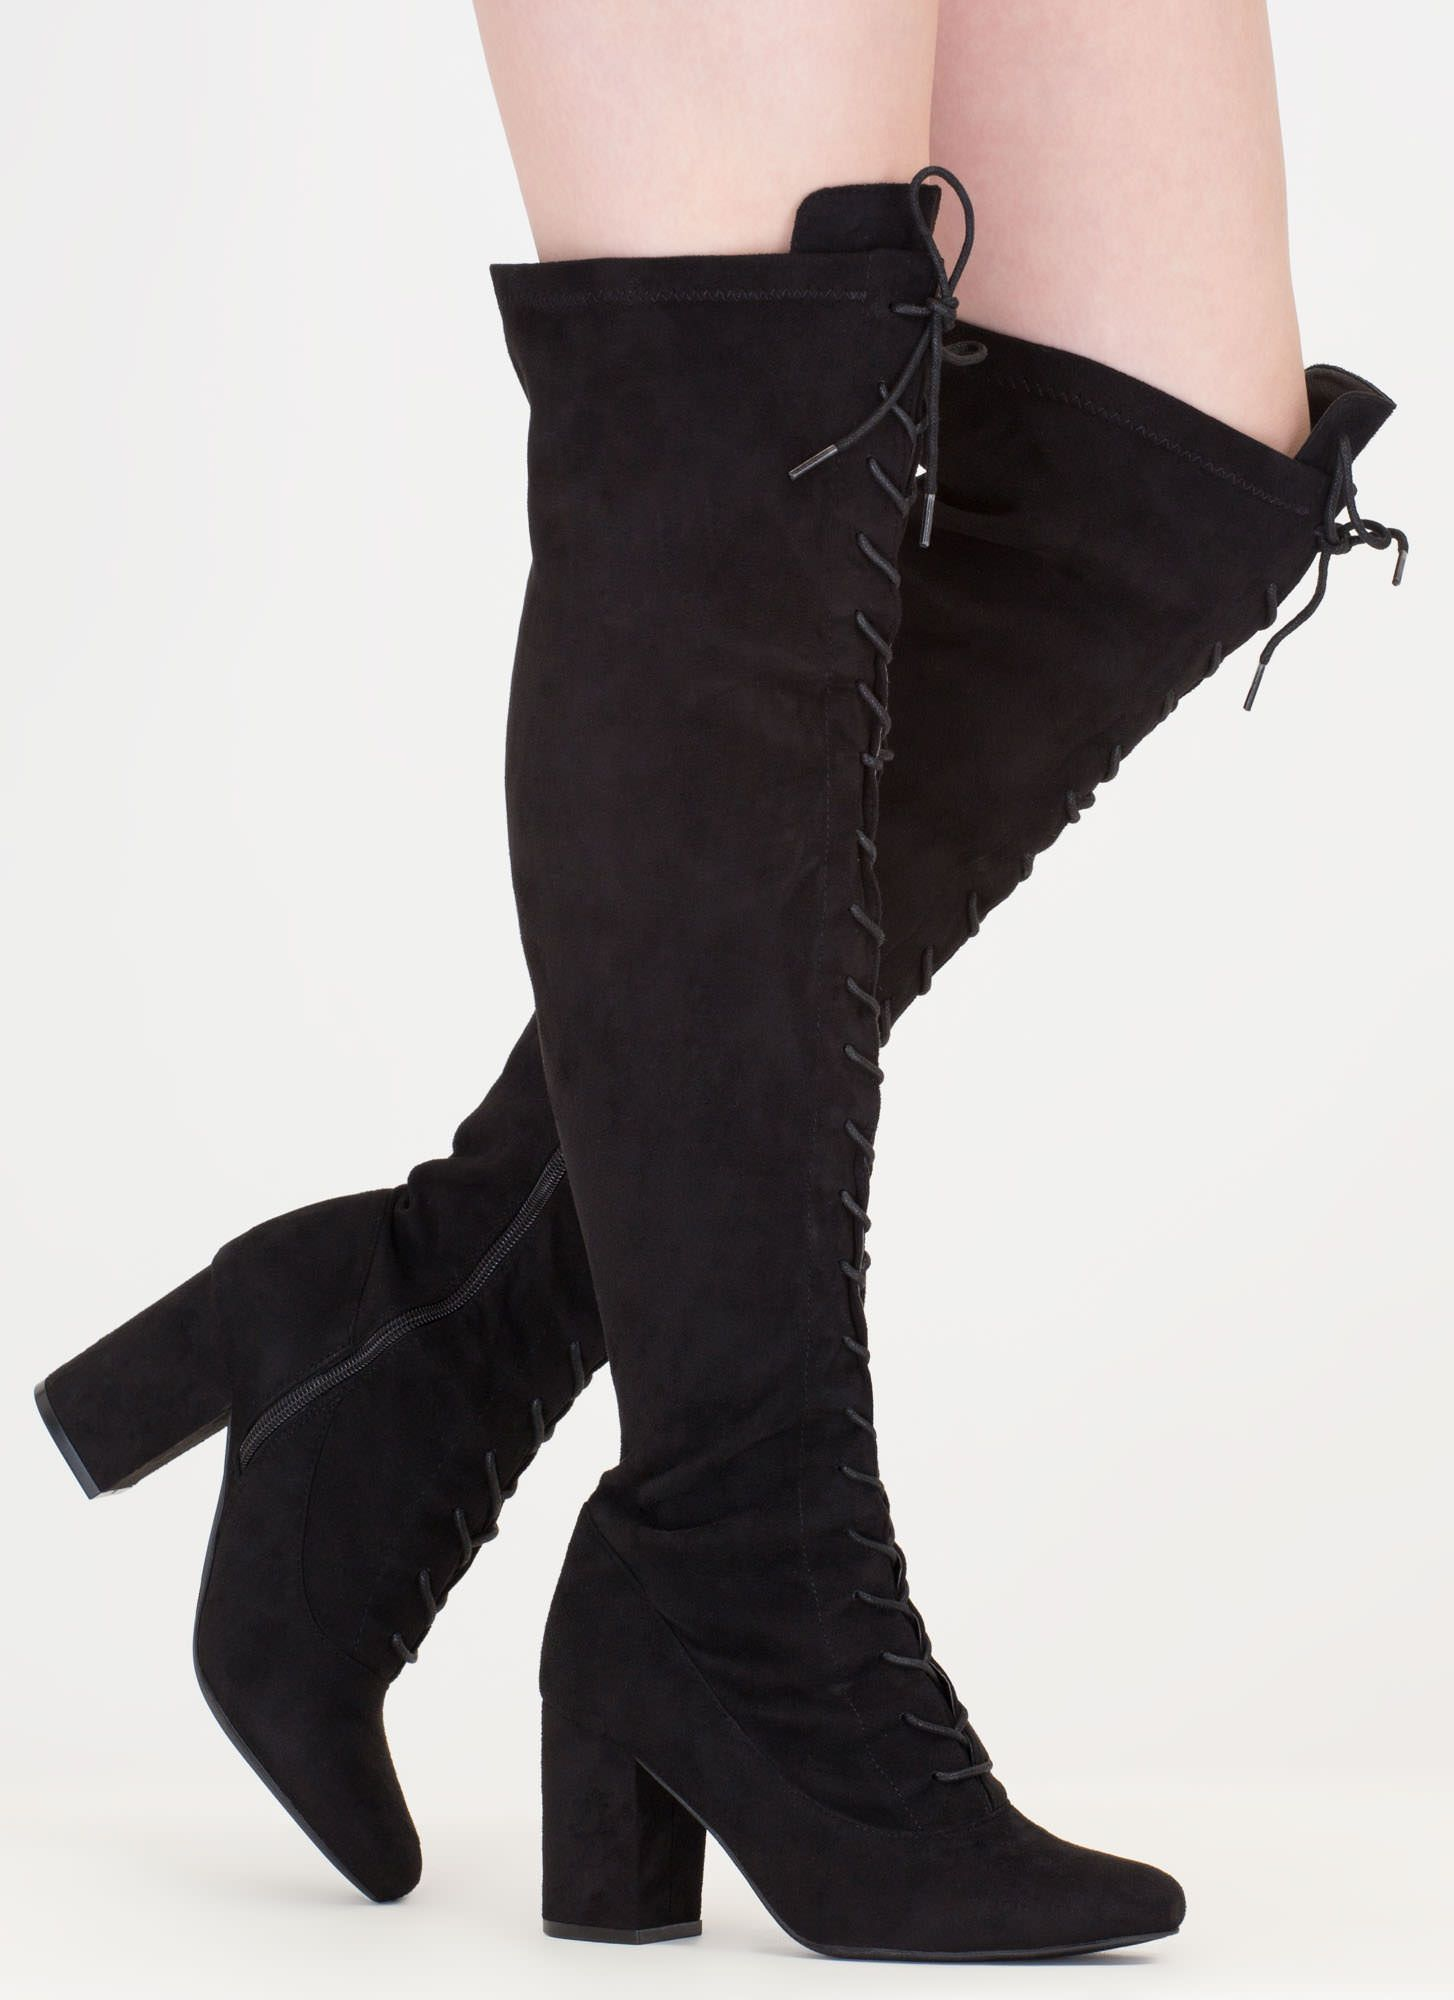 new appearance good best shoes Fierce Chunky Thigh-High Lace-Up Boots | Boots, Black thigh high ...